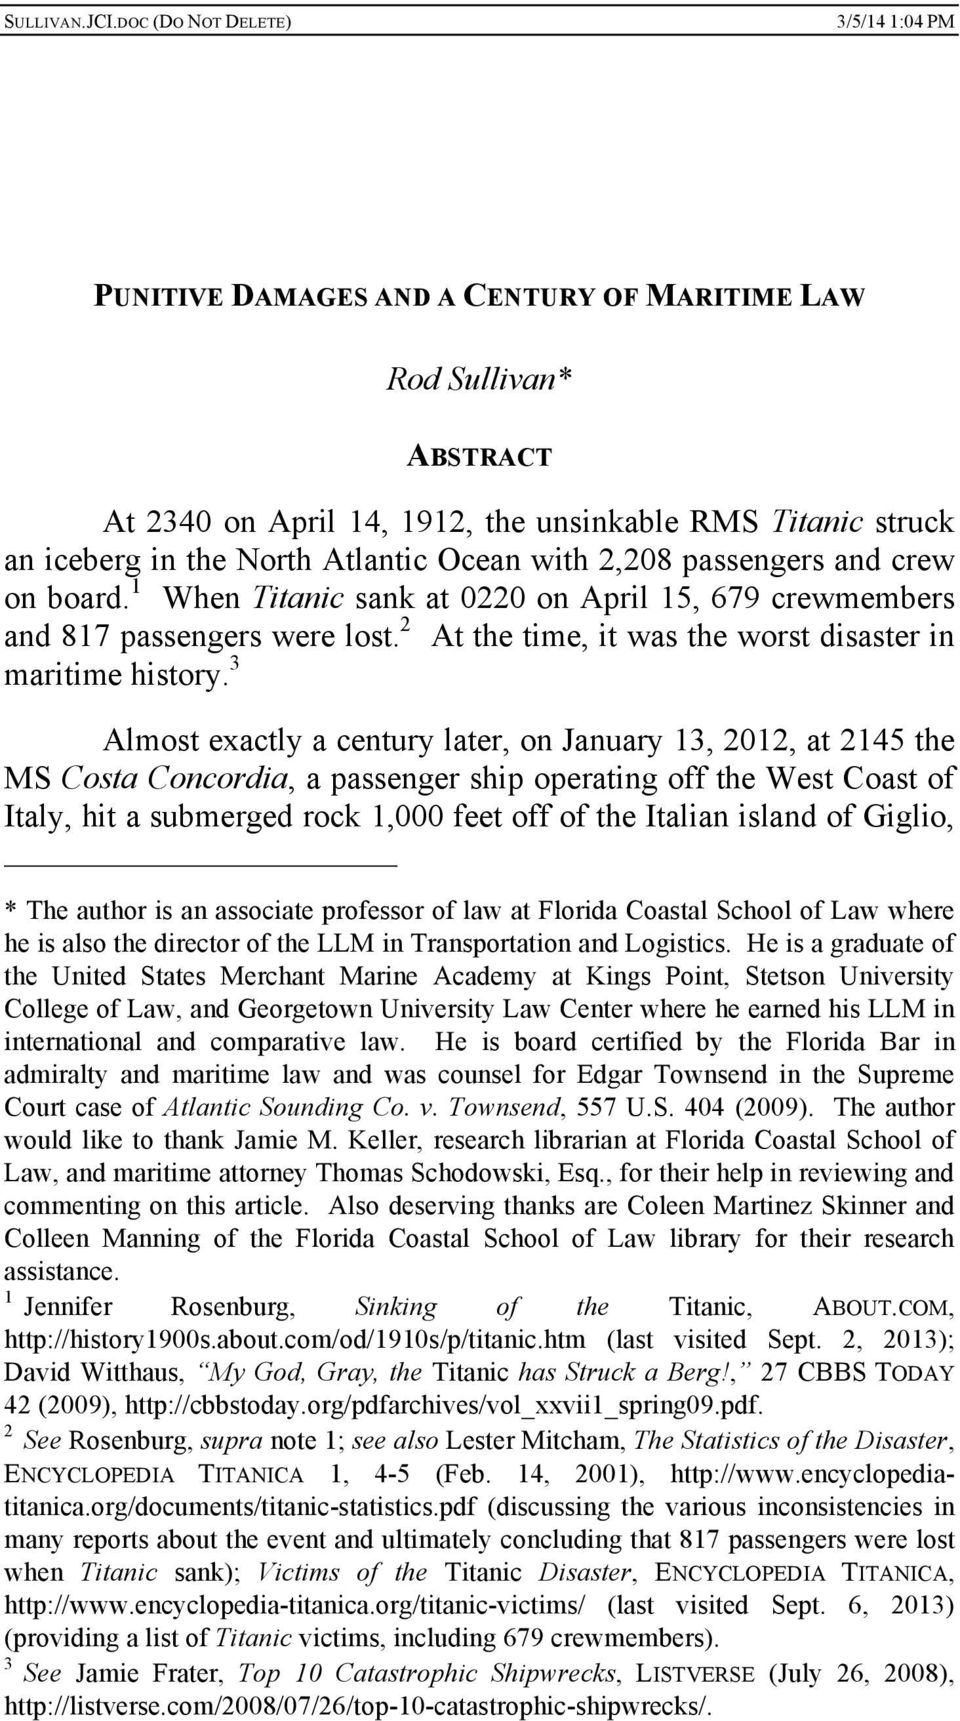 3 Almost exactly a century later, on January 13, 2012, at 2145 the MS Costa Concordia, a passenger ship operating off the West Coast of Italy, hit a submerged rock 1,000 feet off of the Italian